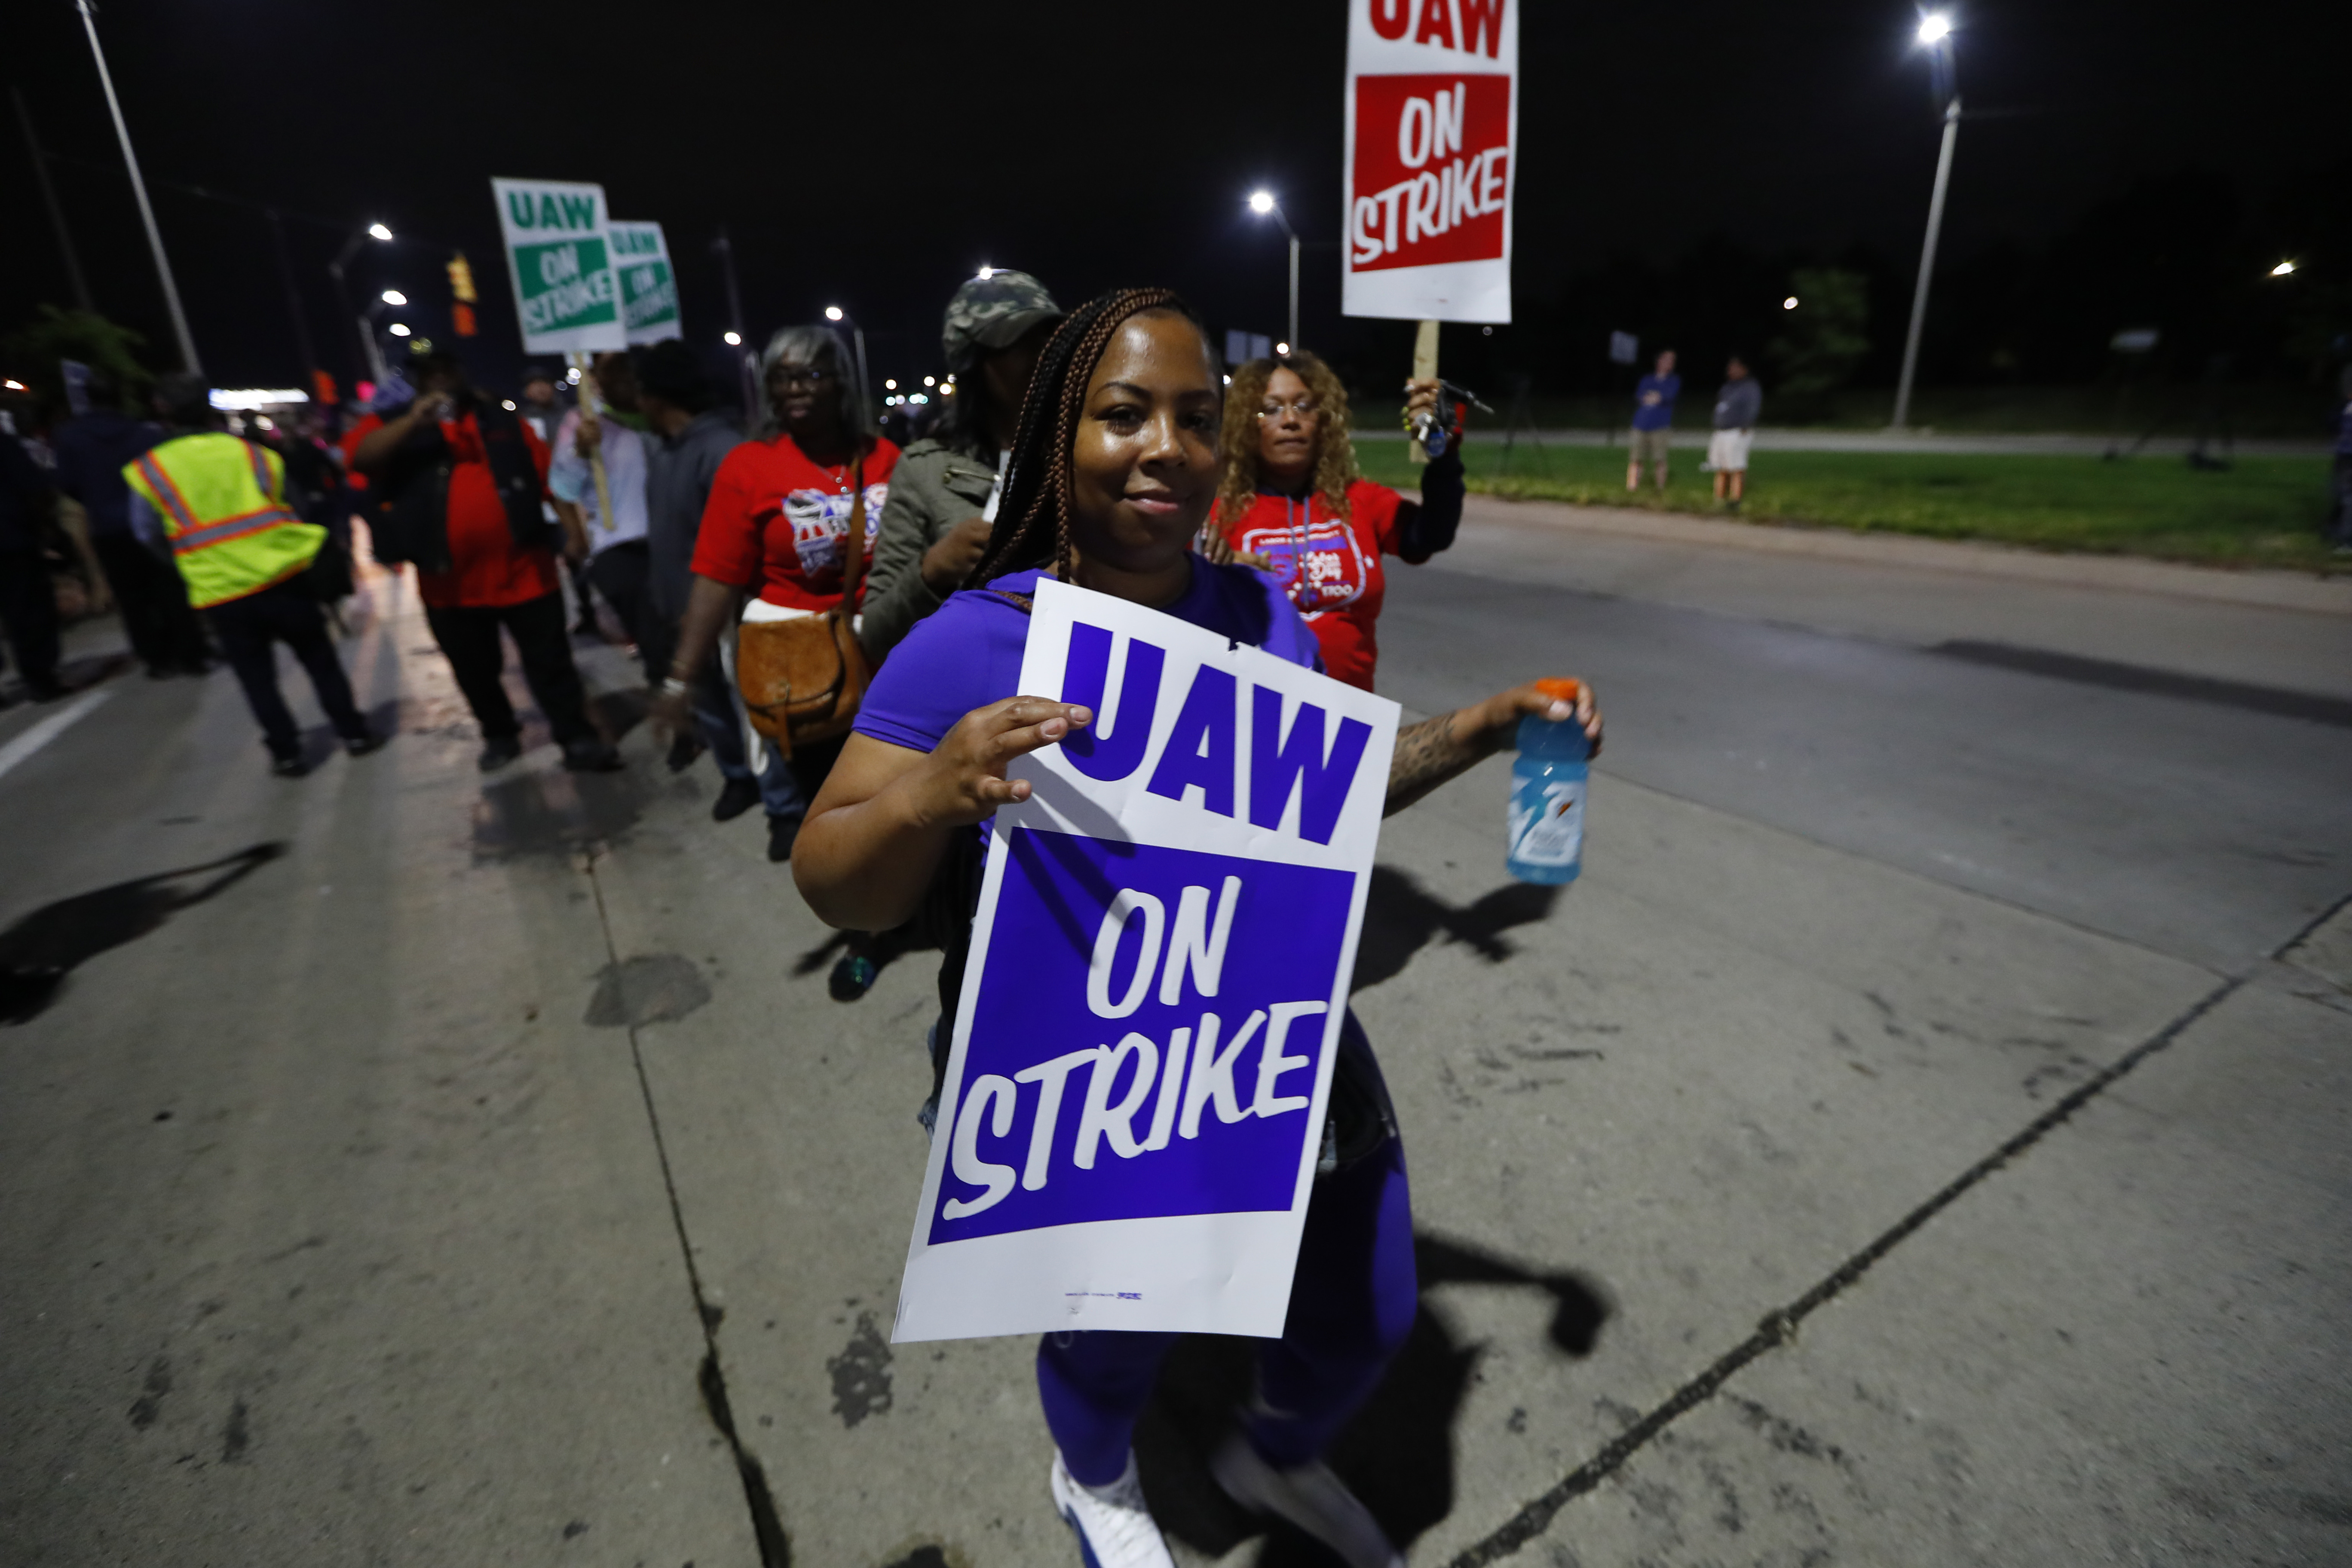 United Auto Workers members picket outside the General Motors assembly plant in Hamtramck, Mich., early Monday.